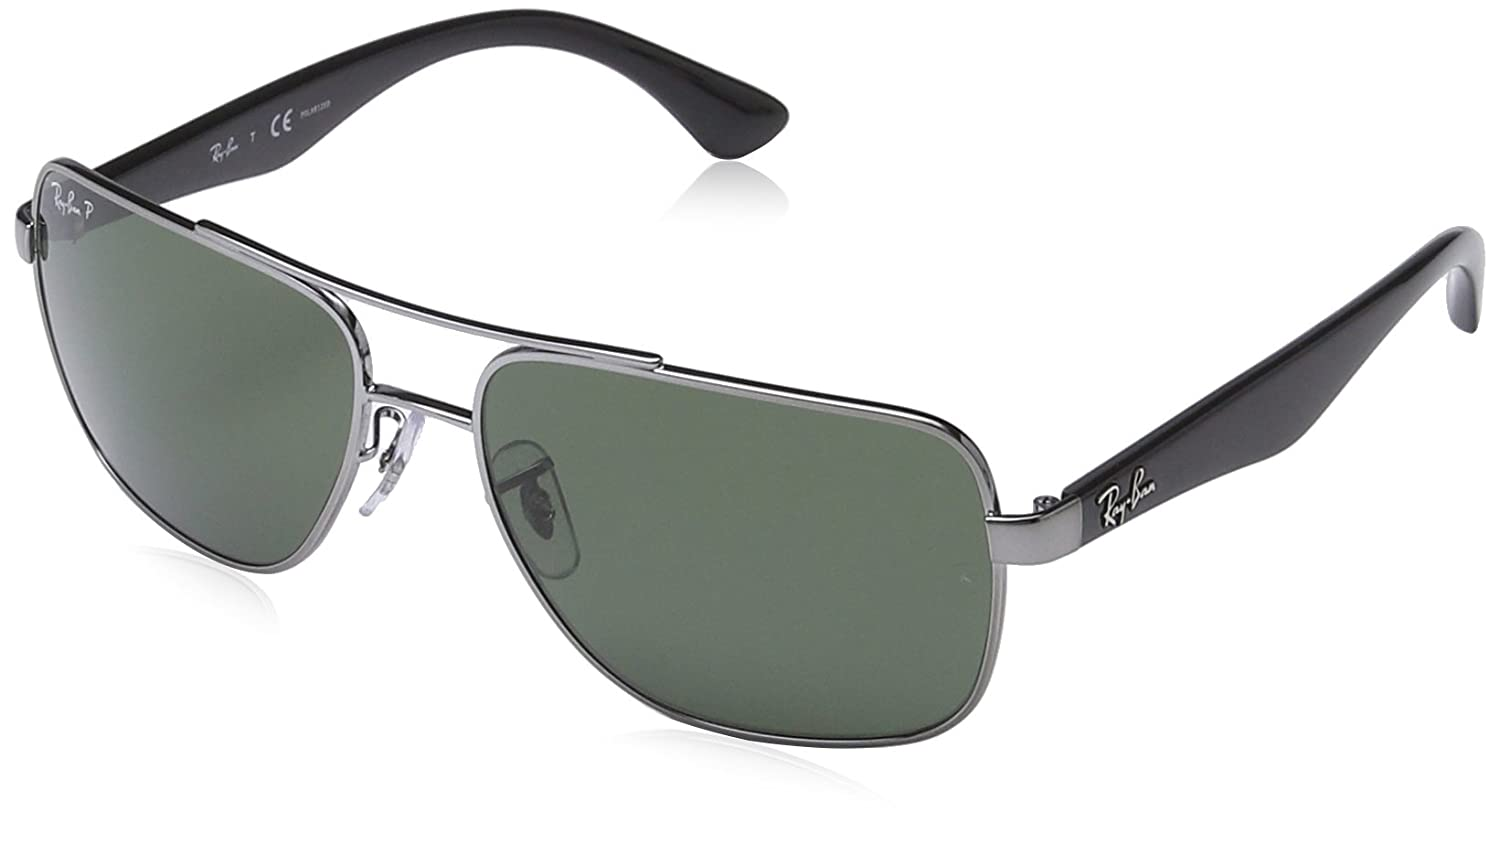 ae172bfc05 ... release date ray ban rb3483 sunglasses black frame grey polarized lens  ray ban rb3483 arista frame